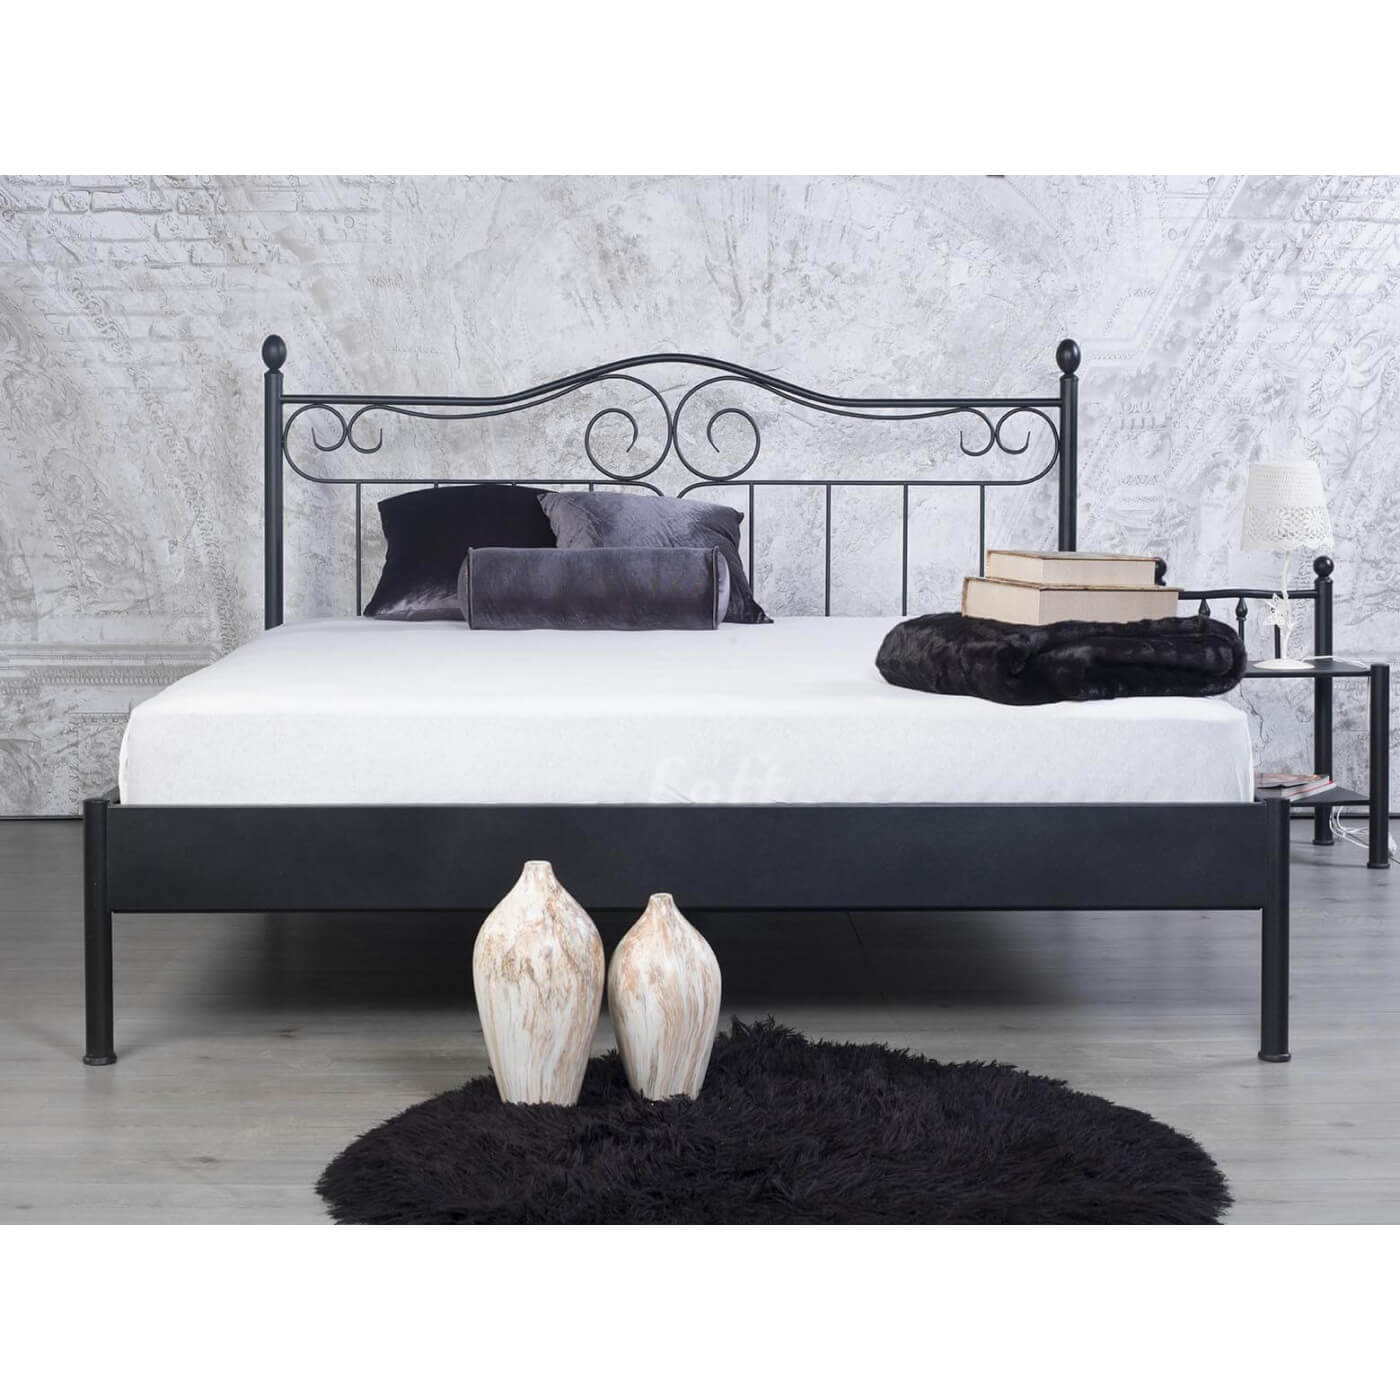 Bedbank Metaal Awesome With Wit Metalen Bed